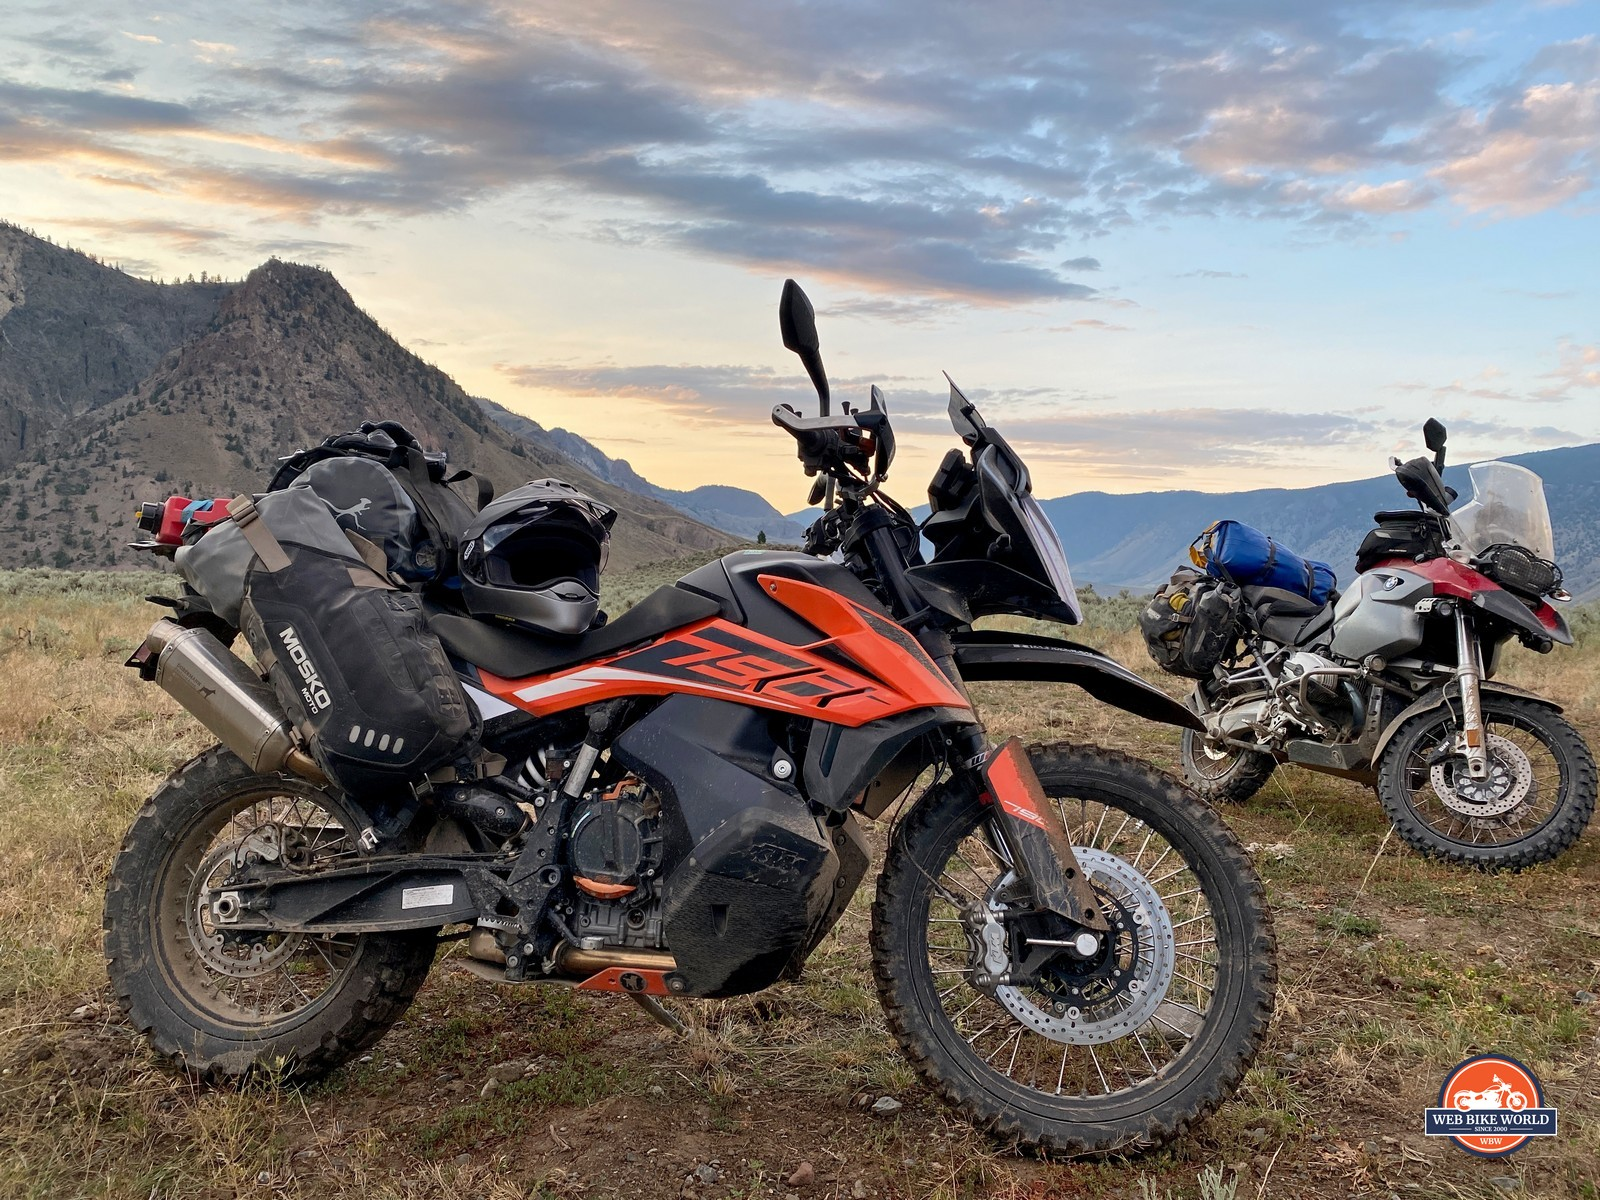 A KTM 790 Adventure and BMW R1200GS parked in front of a sunset in British Columbia, Canada.